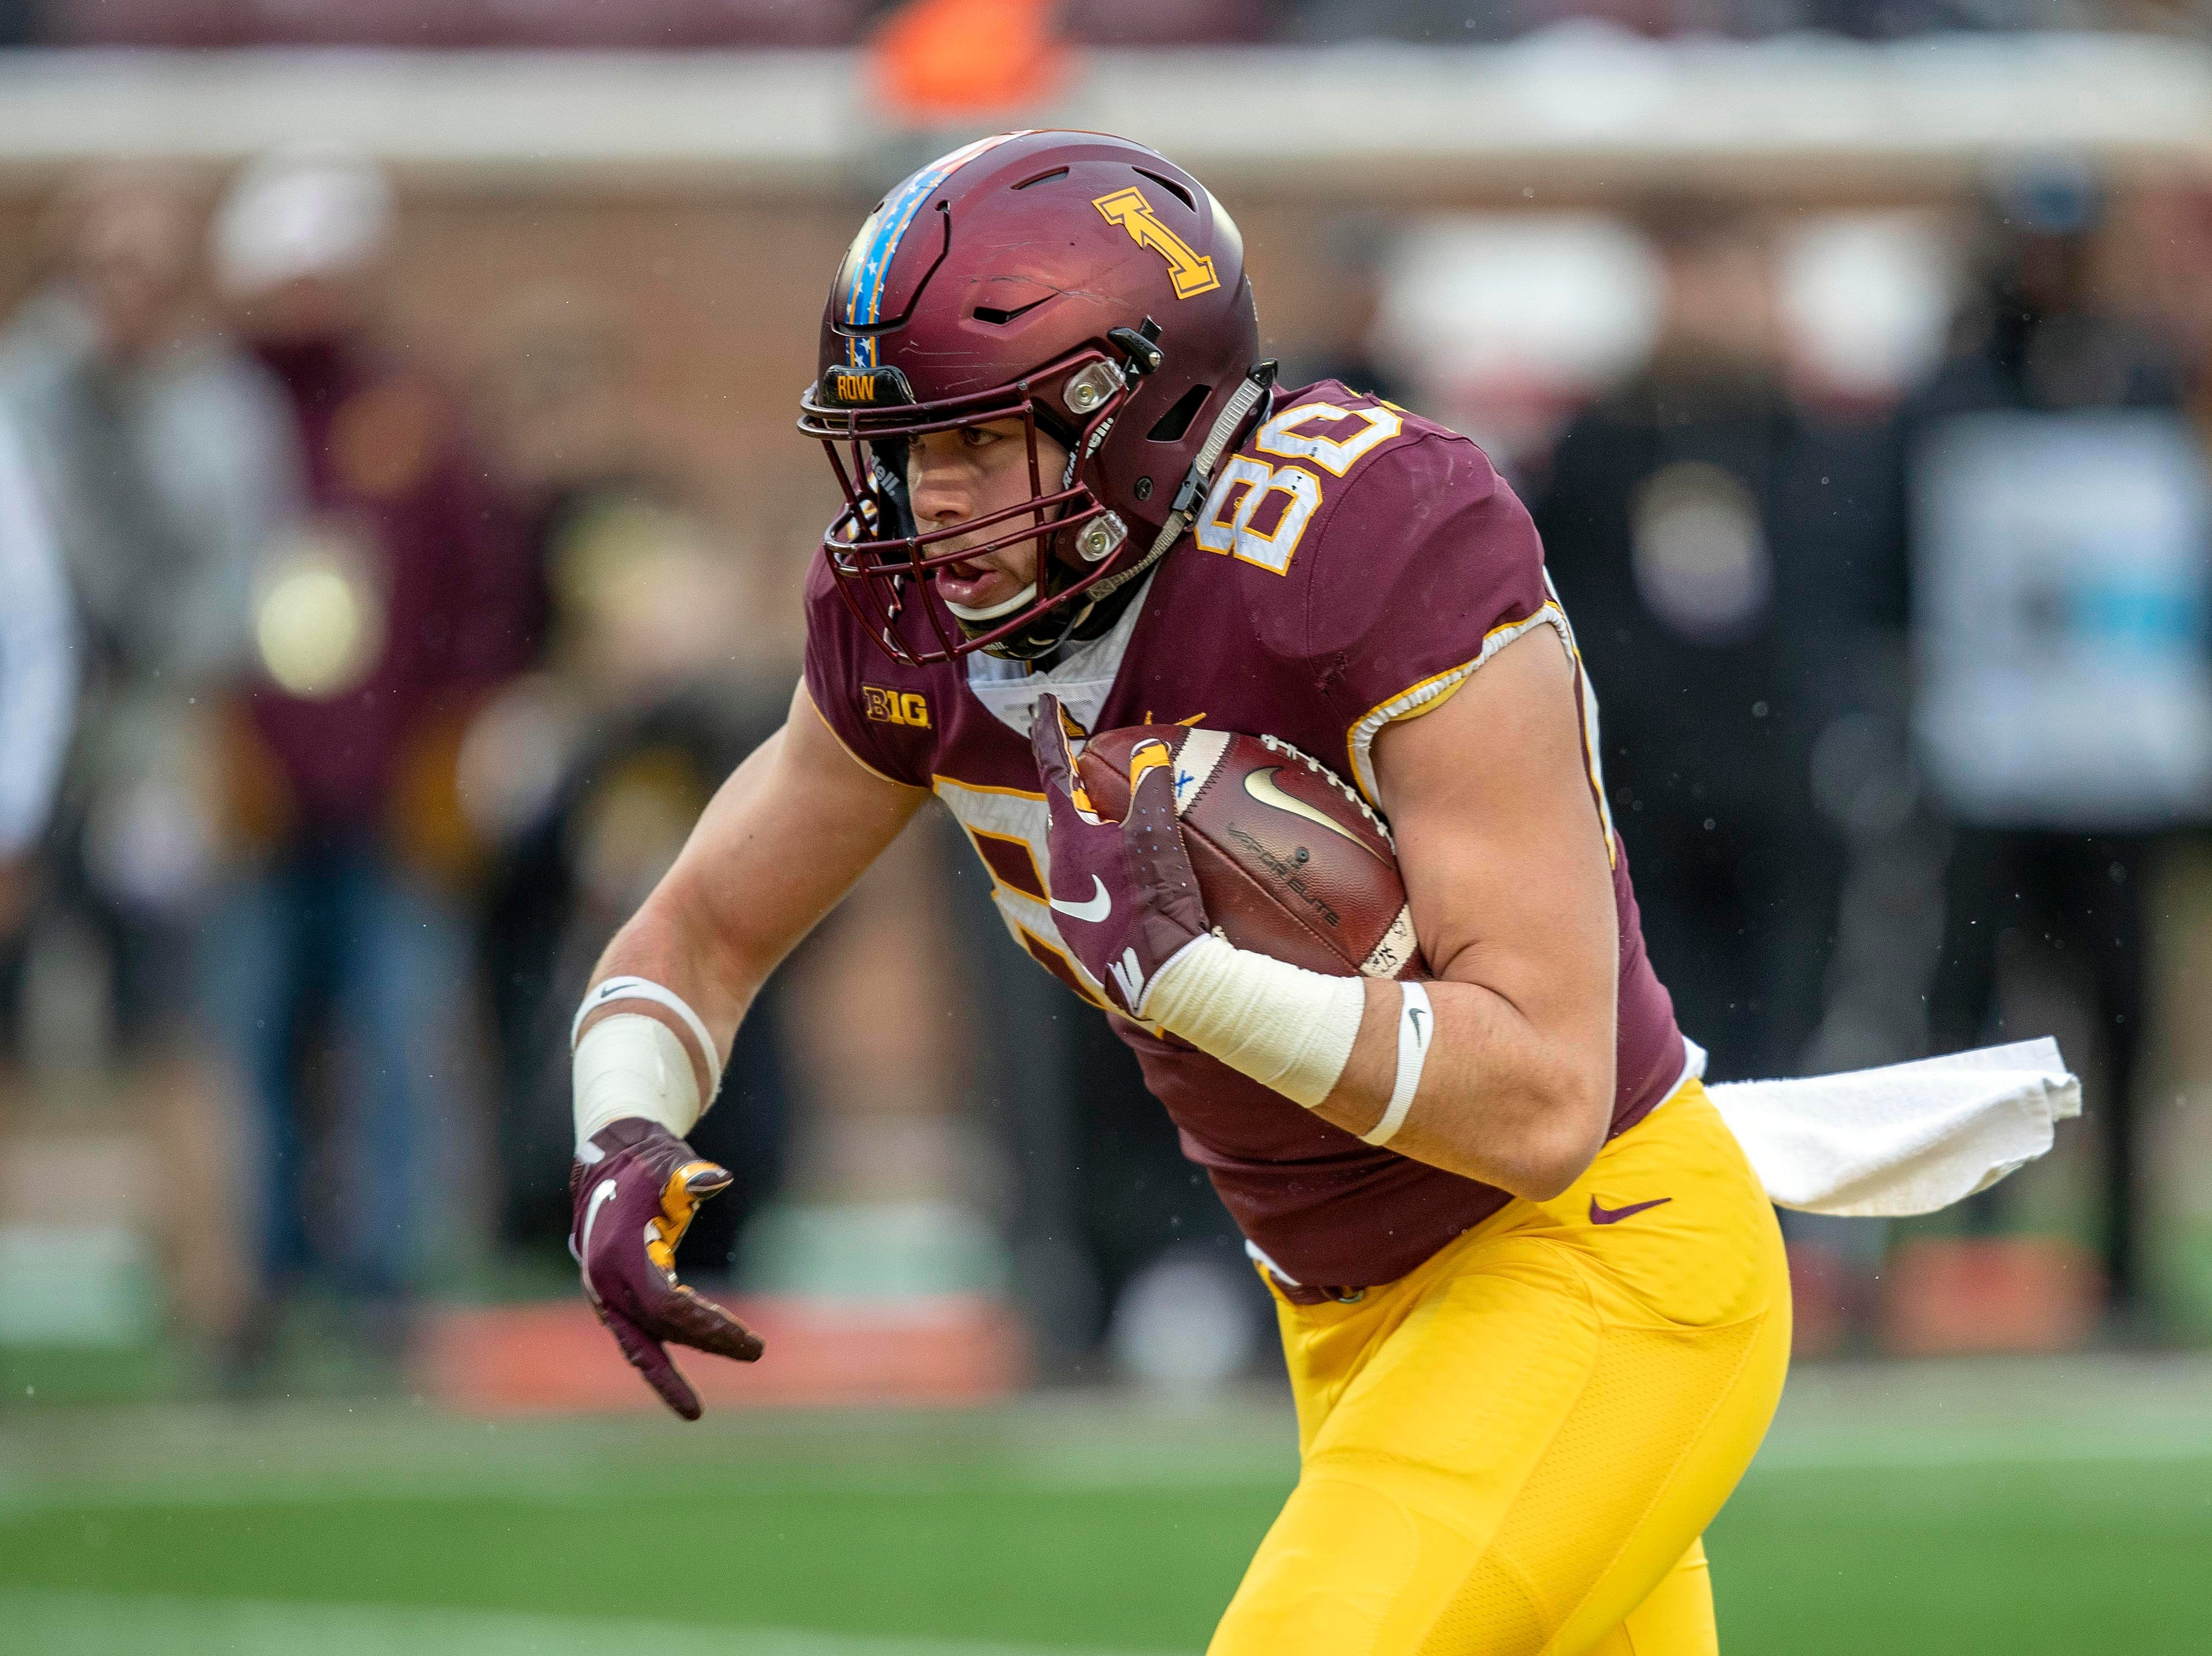 Nov 10, 2018; Minneapolis, MN, USA; Minnesota Golden Gophers tight end Jake Paulson (80) rushes for a touchdown in the first half against the Purdue Boilermakers at TCF Bank Stadium. Mandatory Credit: Jesse Johnson-USA TODAY Sports